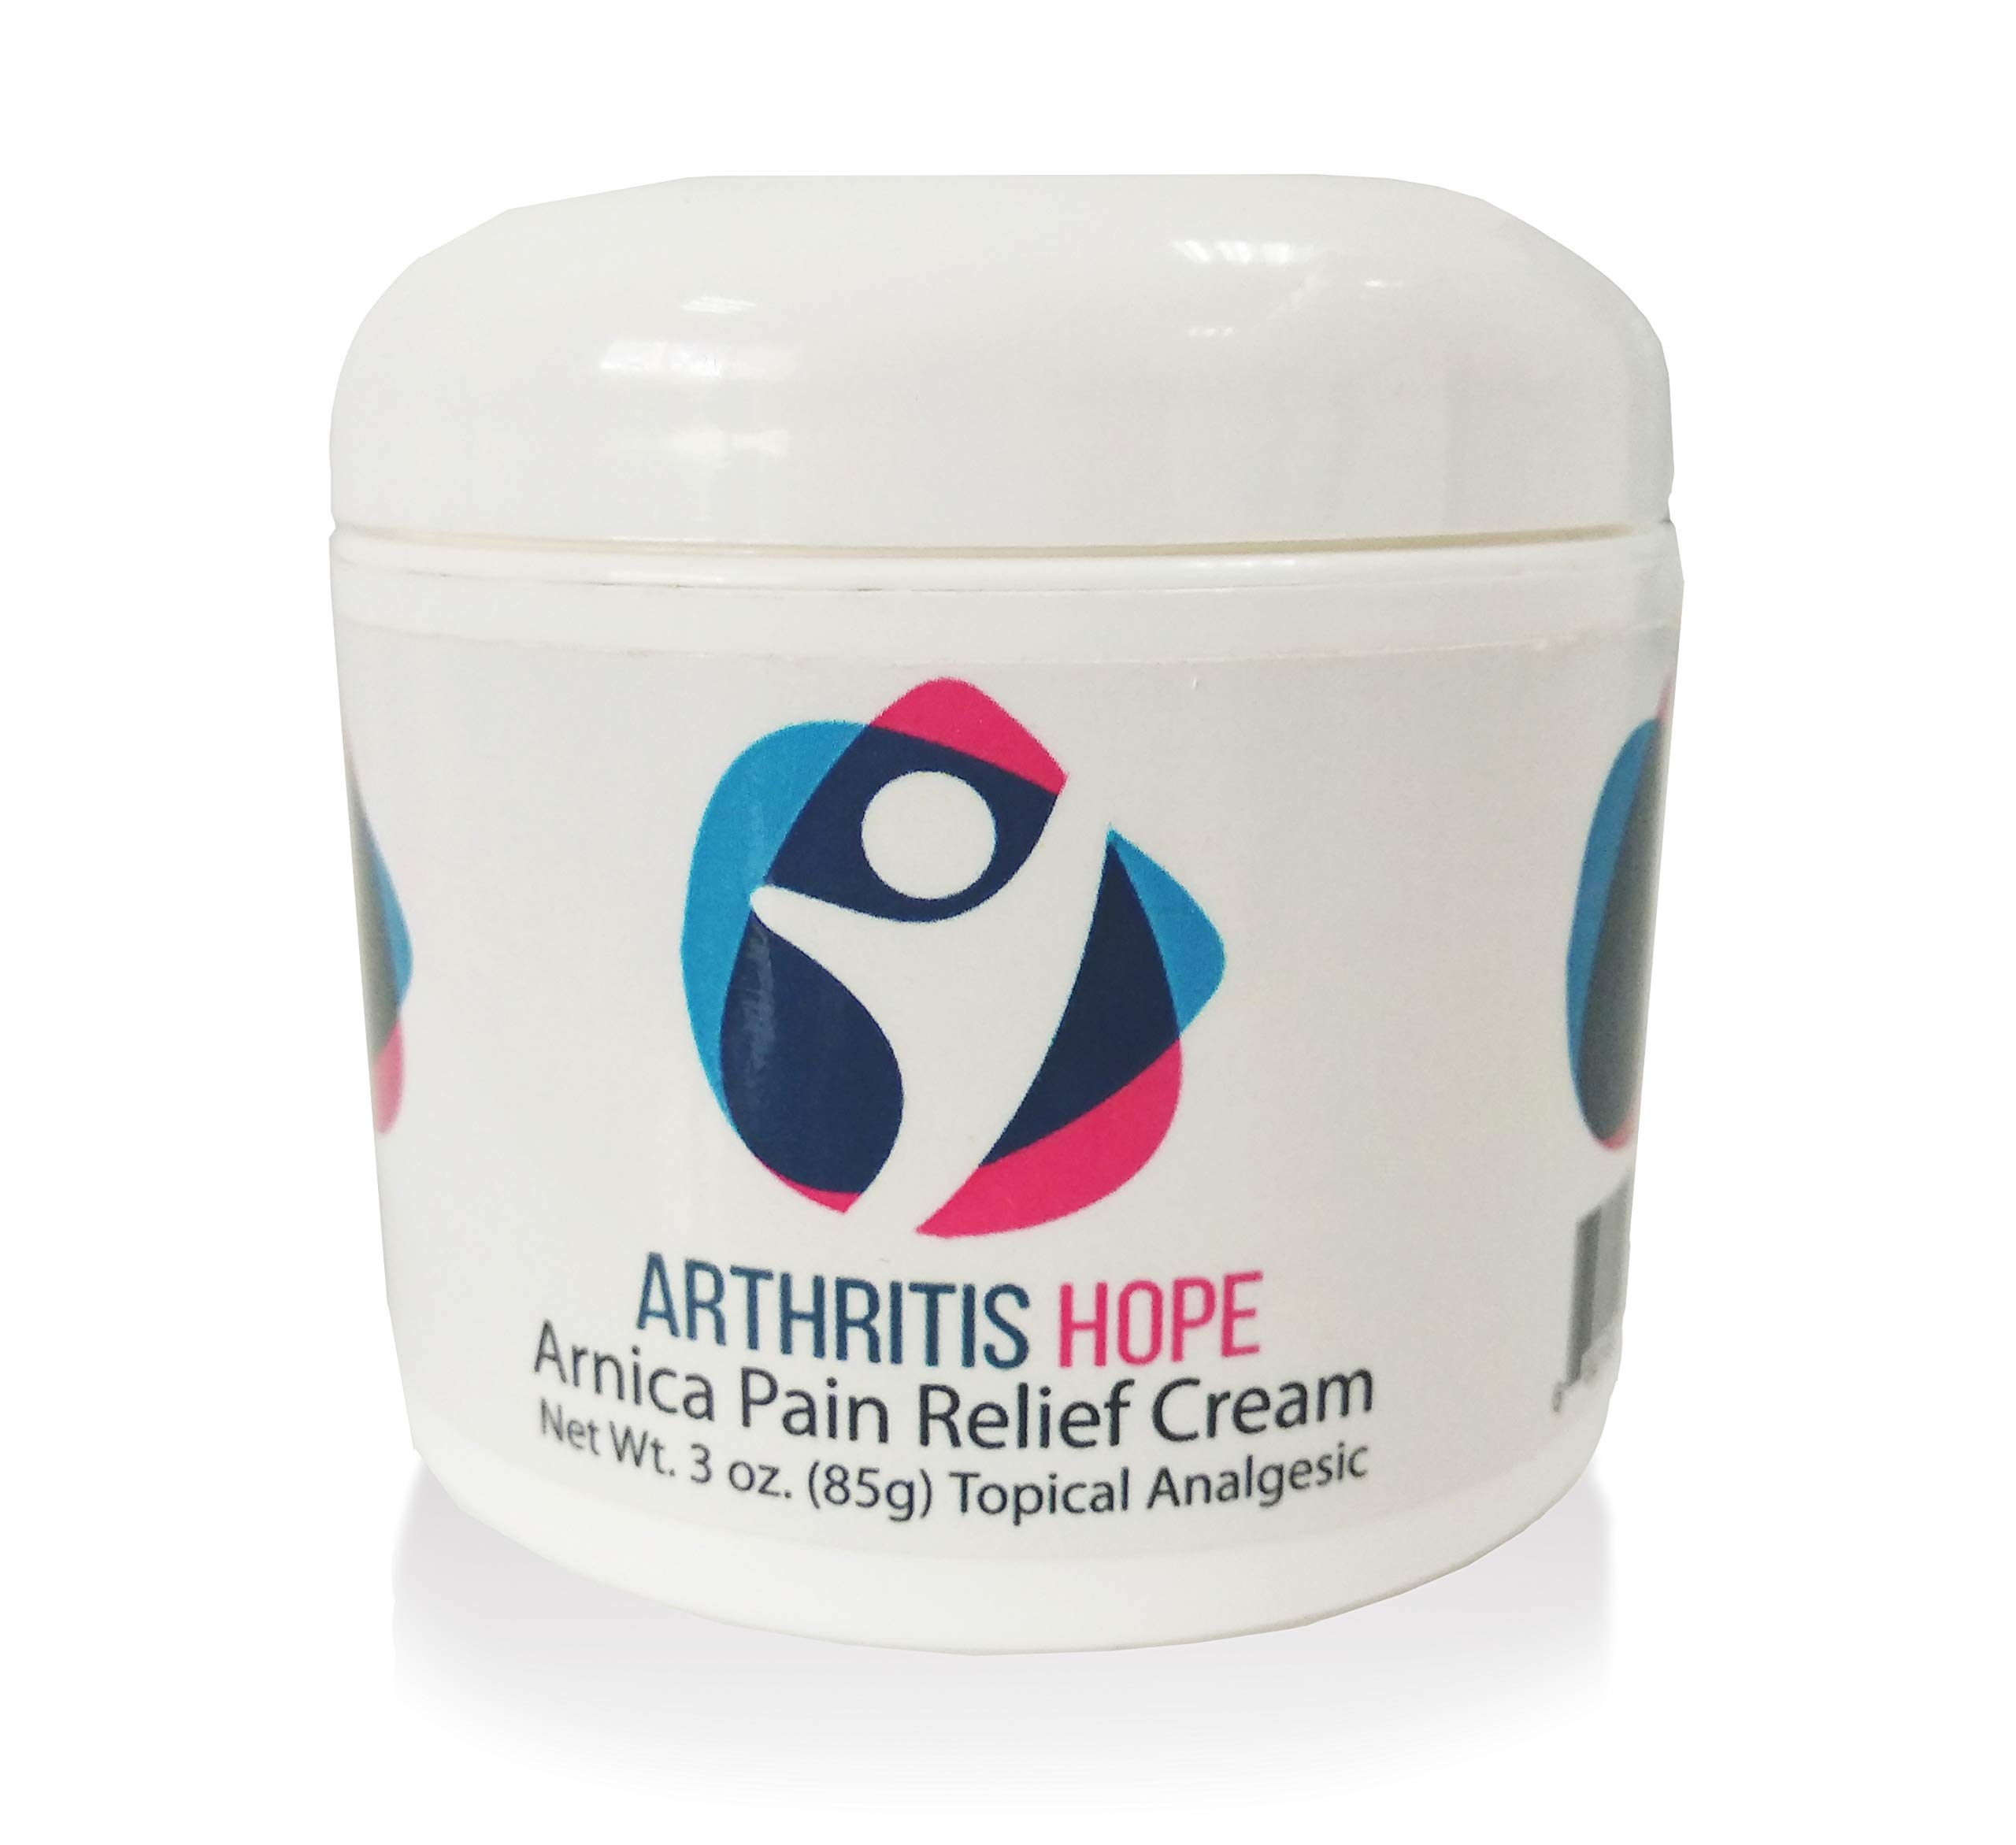 ArthritisHope Pain Relief Cream FDA Approved – Made with Arnica and 8 Natural and Powerful Ingredients to Target The Pain in Your Joints, Bringing a Fast Relieving Sensation